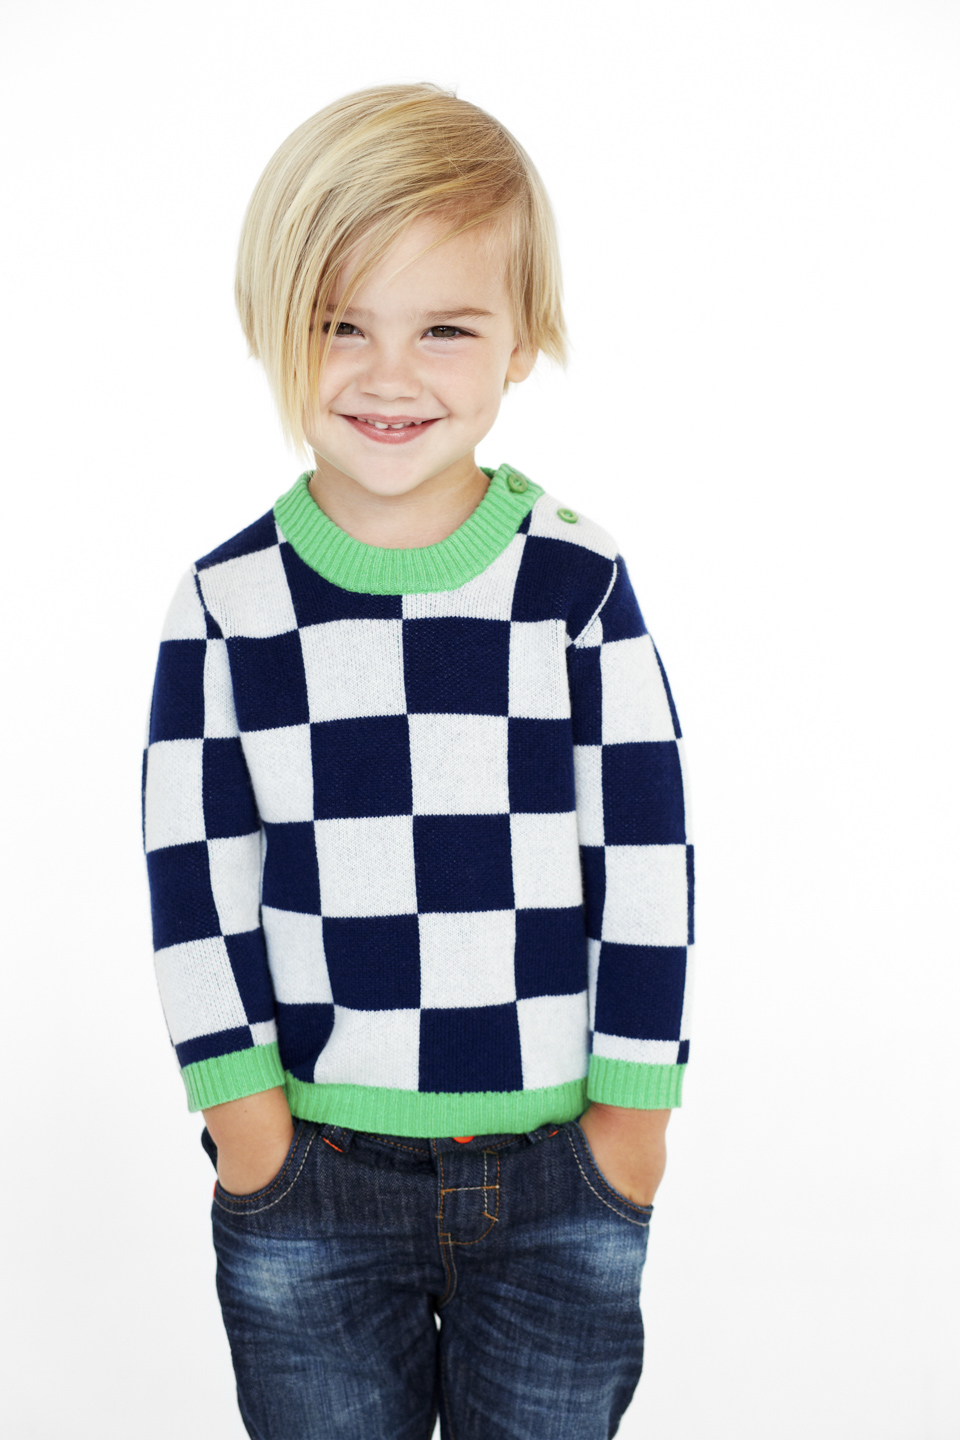 Atelier Child_FW15_The Check Navy Sweater 2_Hi Res.jpg